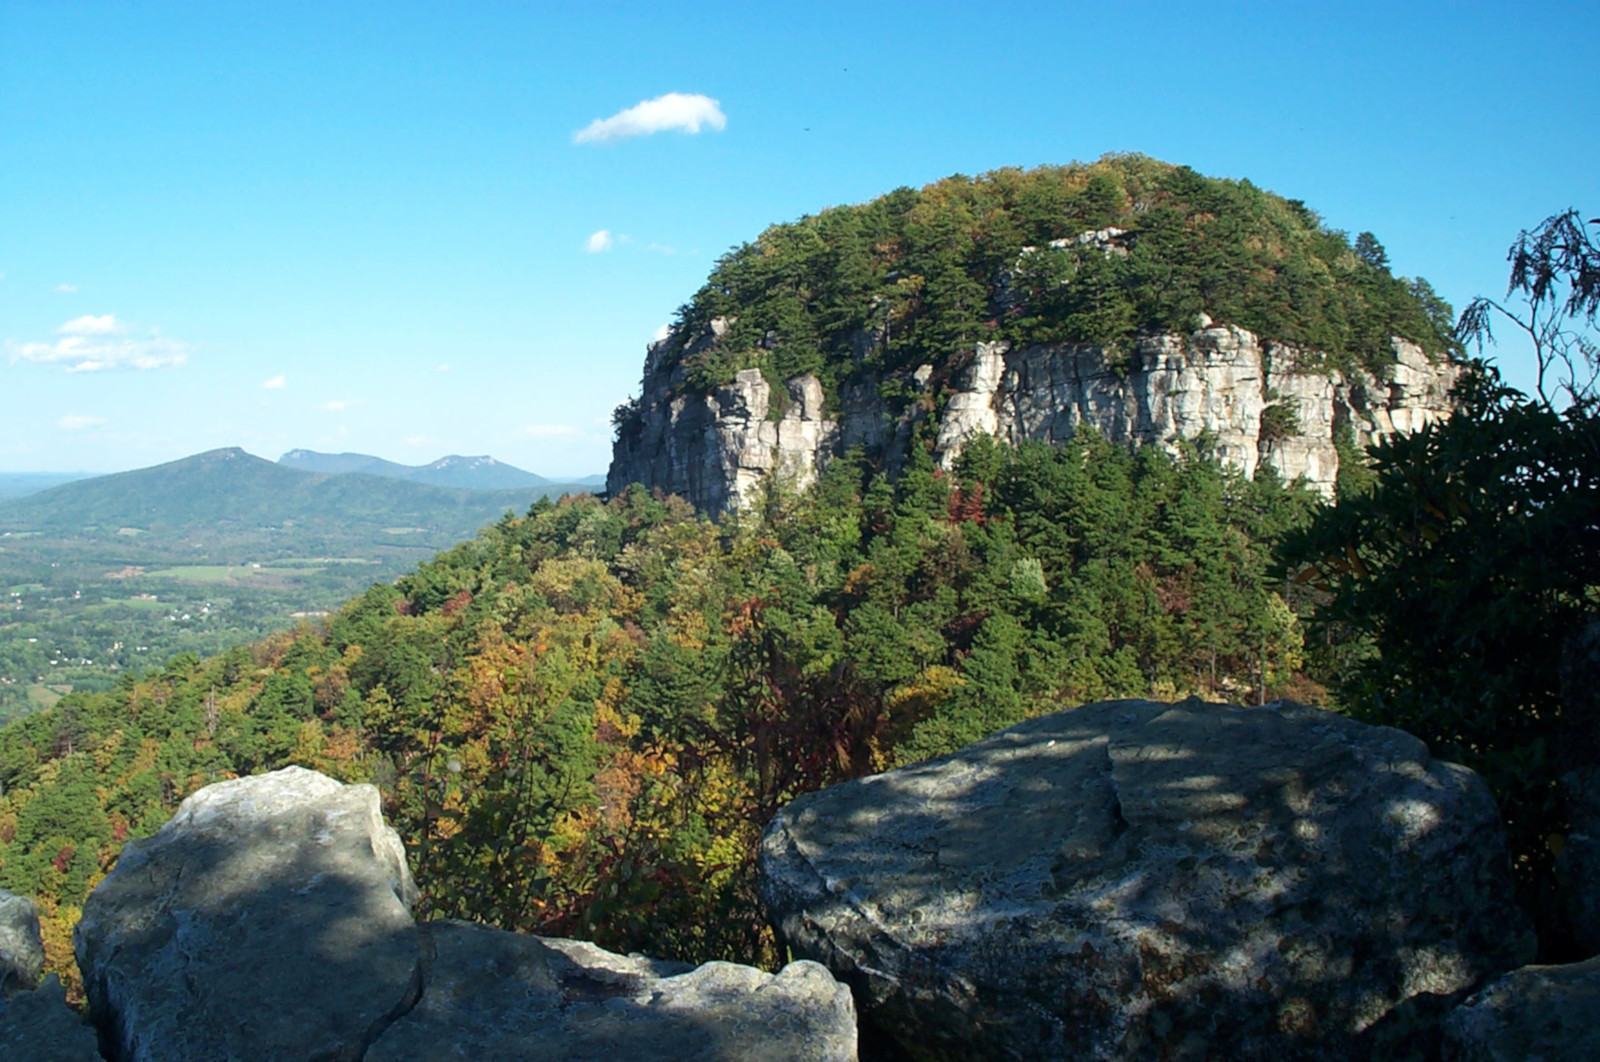 pilot mountain with unknown mountains in the distance